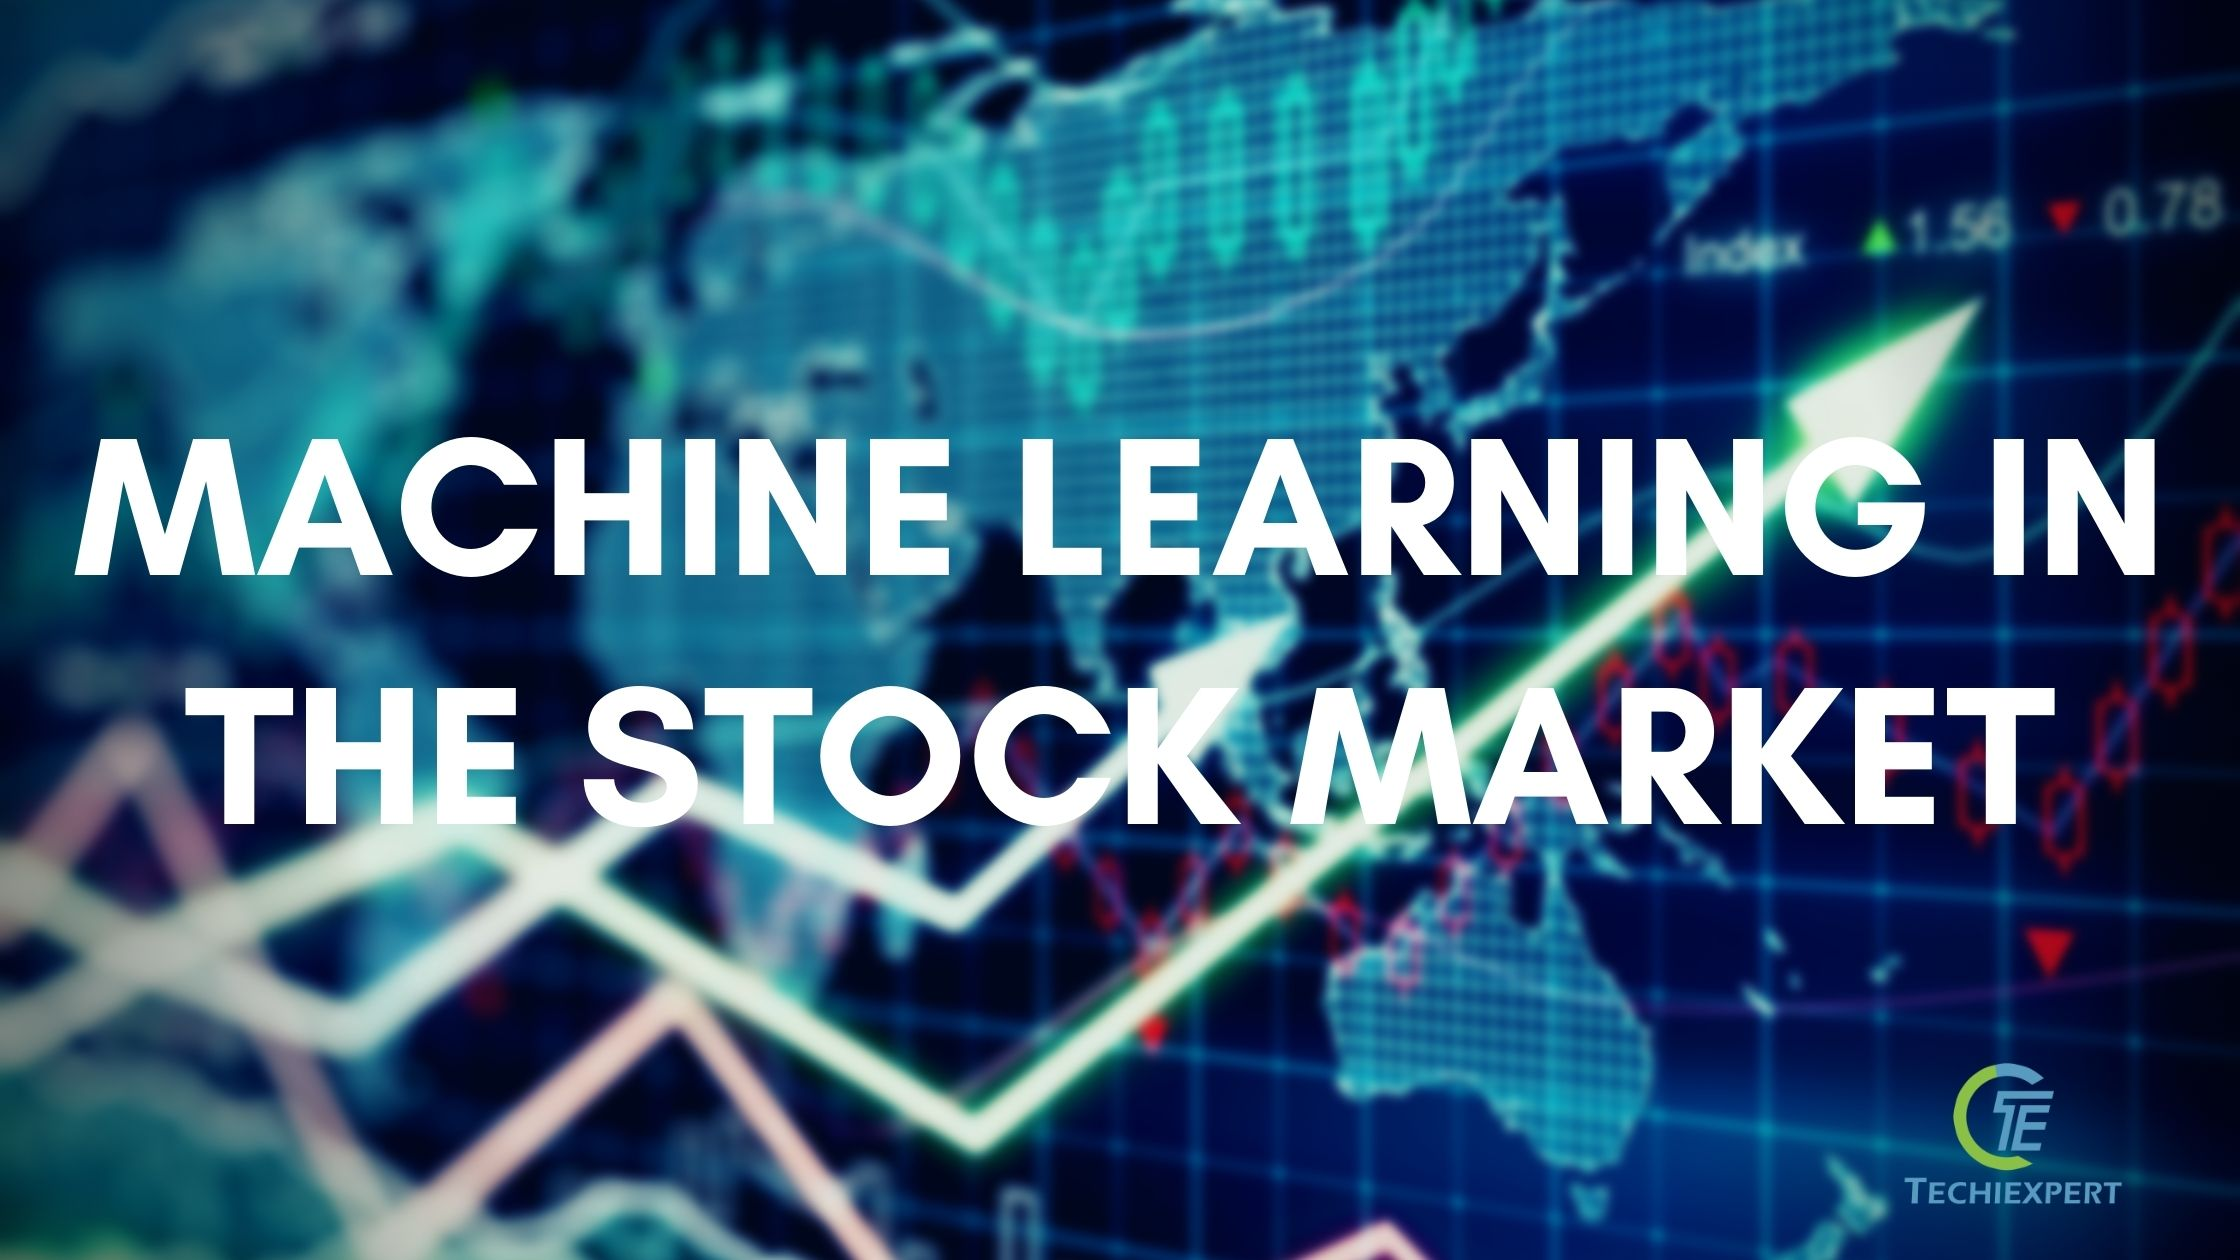 How Machine Learning and Artificial Intelligence helping traders/Stock Market 2